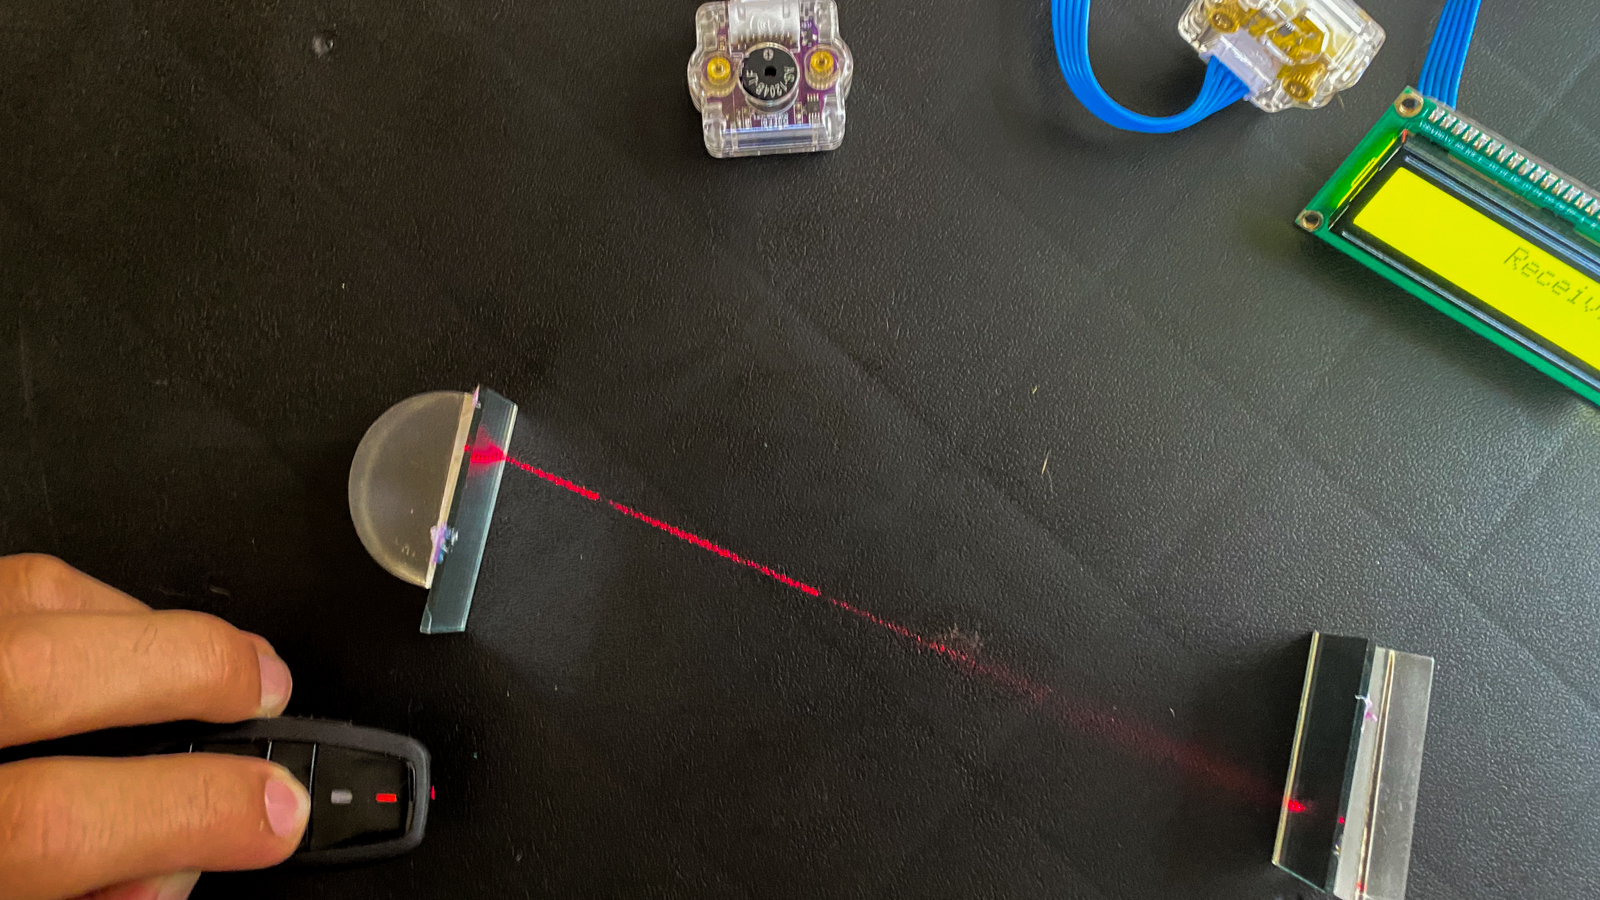 Collage of images showing a red laser pointing at a mirror, the laser hitting a sensor, and a indicator device reading 'receiving'